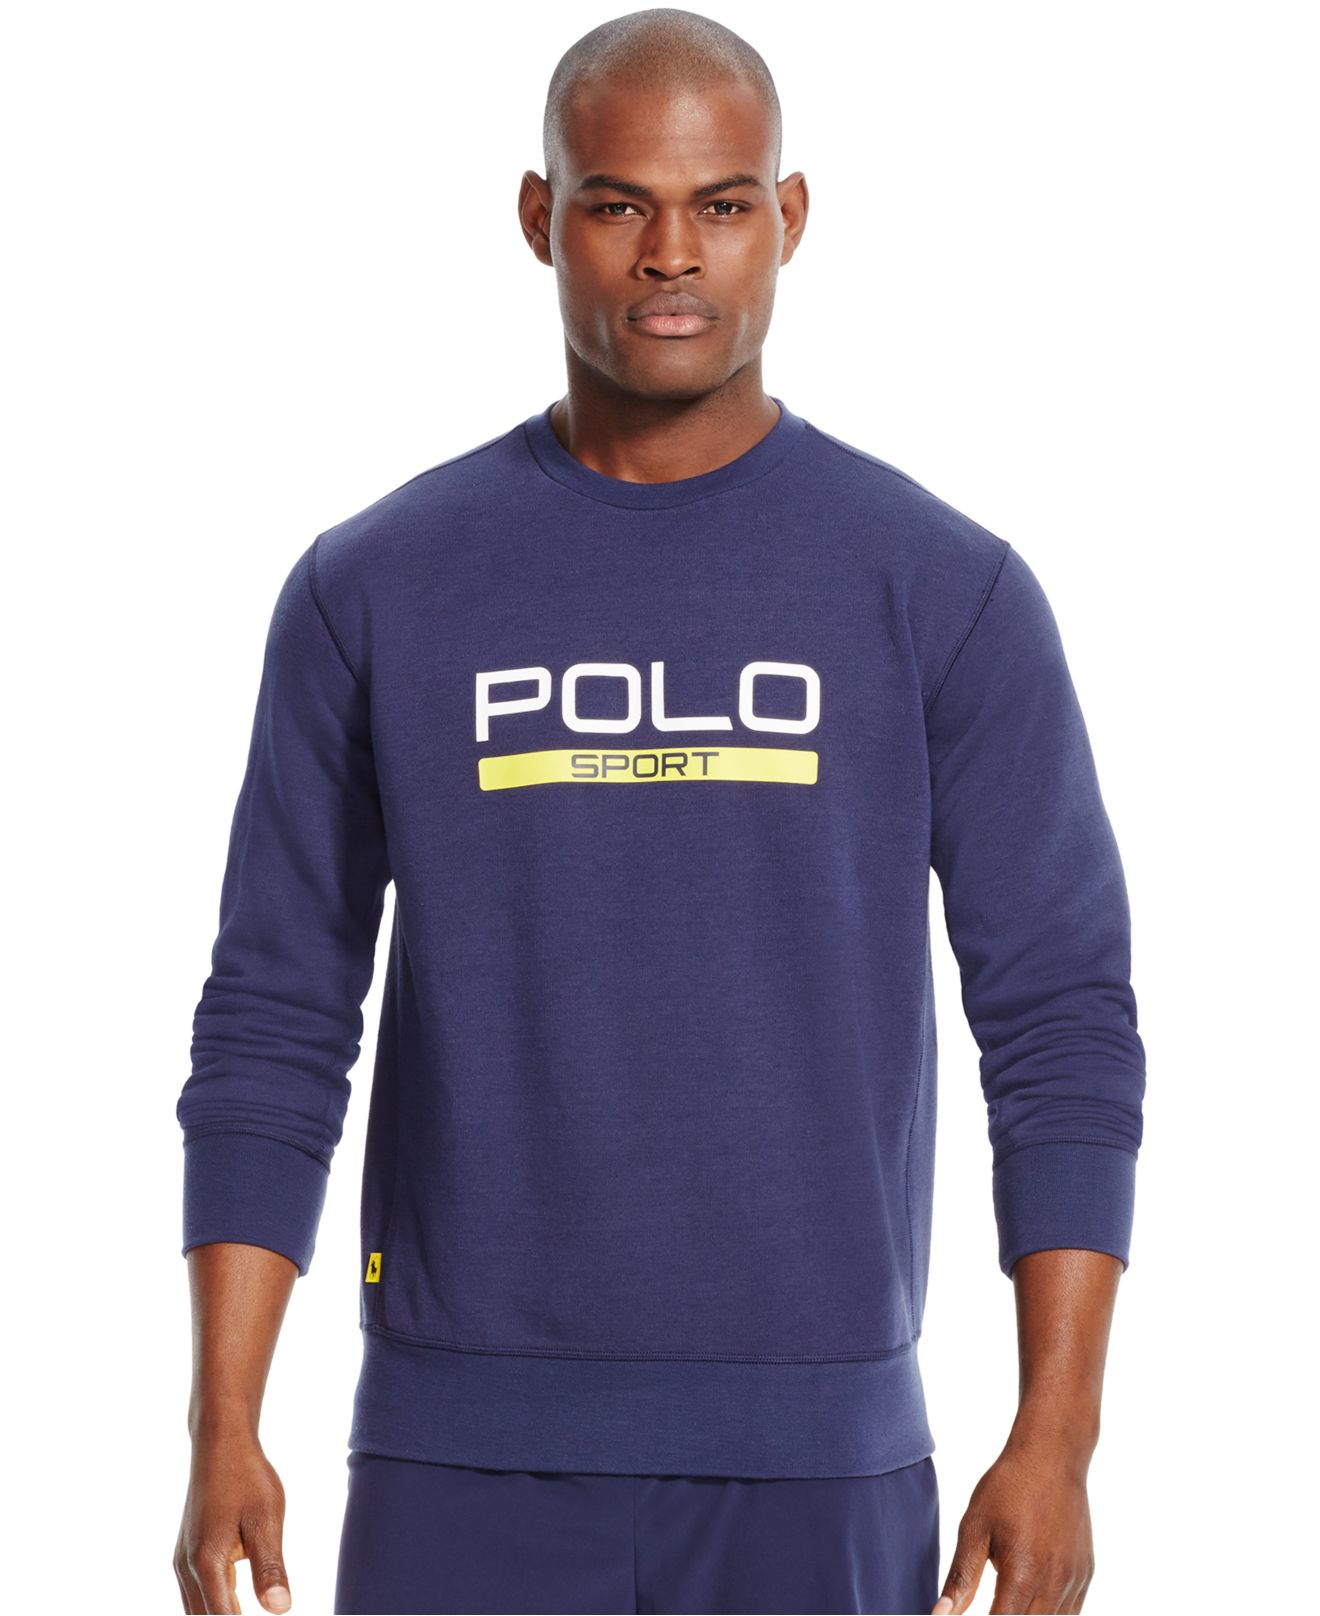 Polo ralph lauren Polo Sport Men's Fleece Crew Neck Sweatshirt in ...